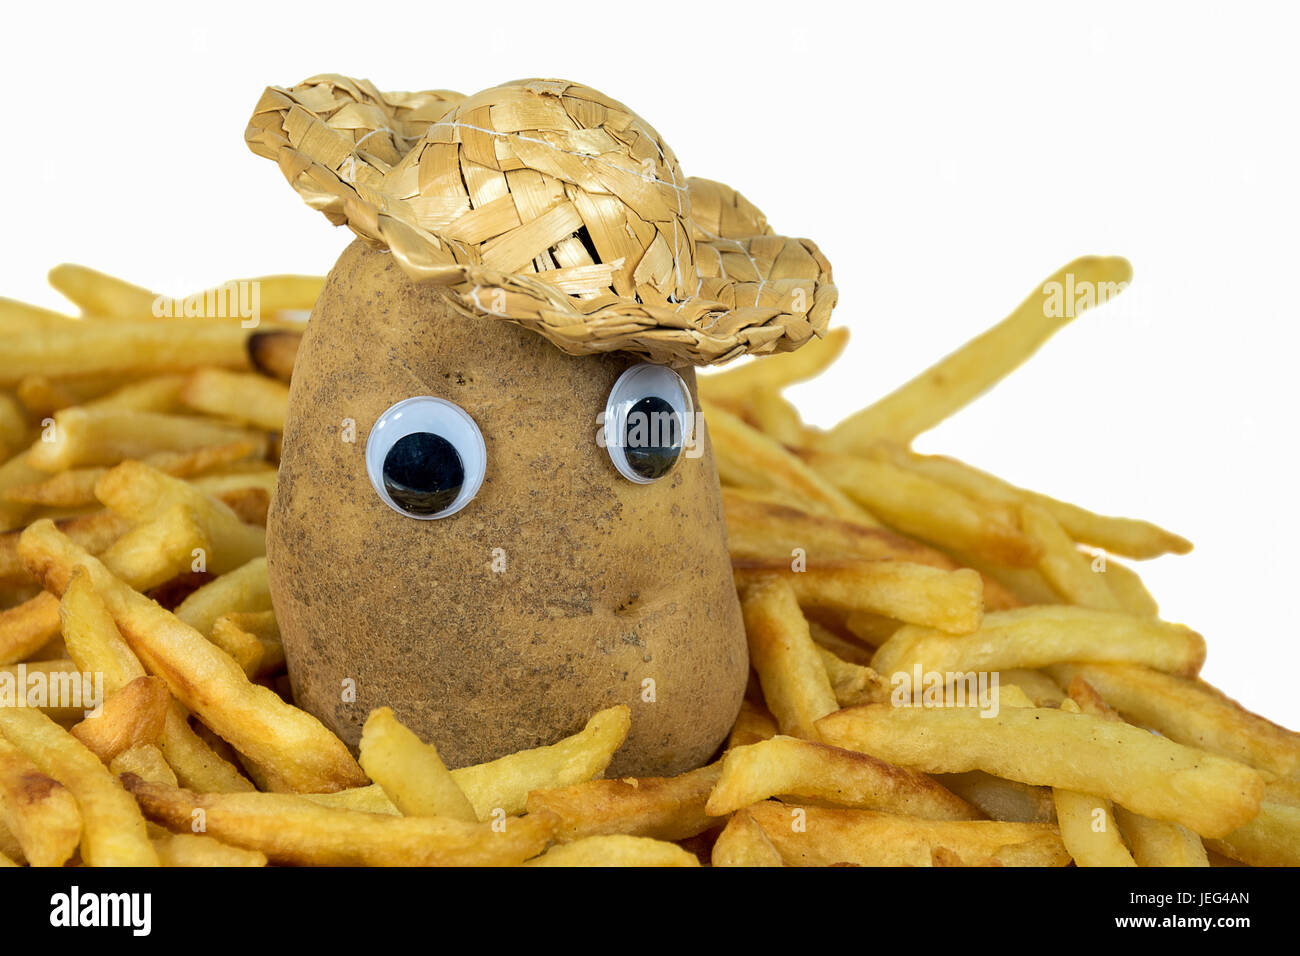 potato with straw hat and eyeballs in french fries - Stock Image